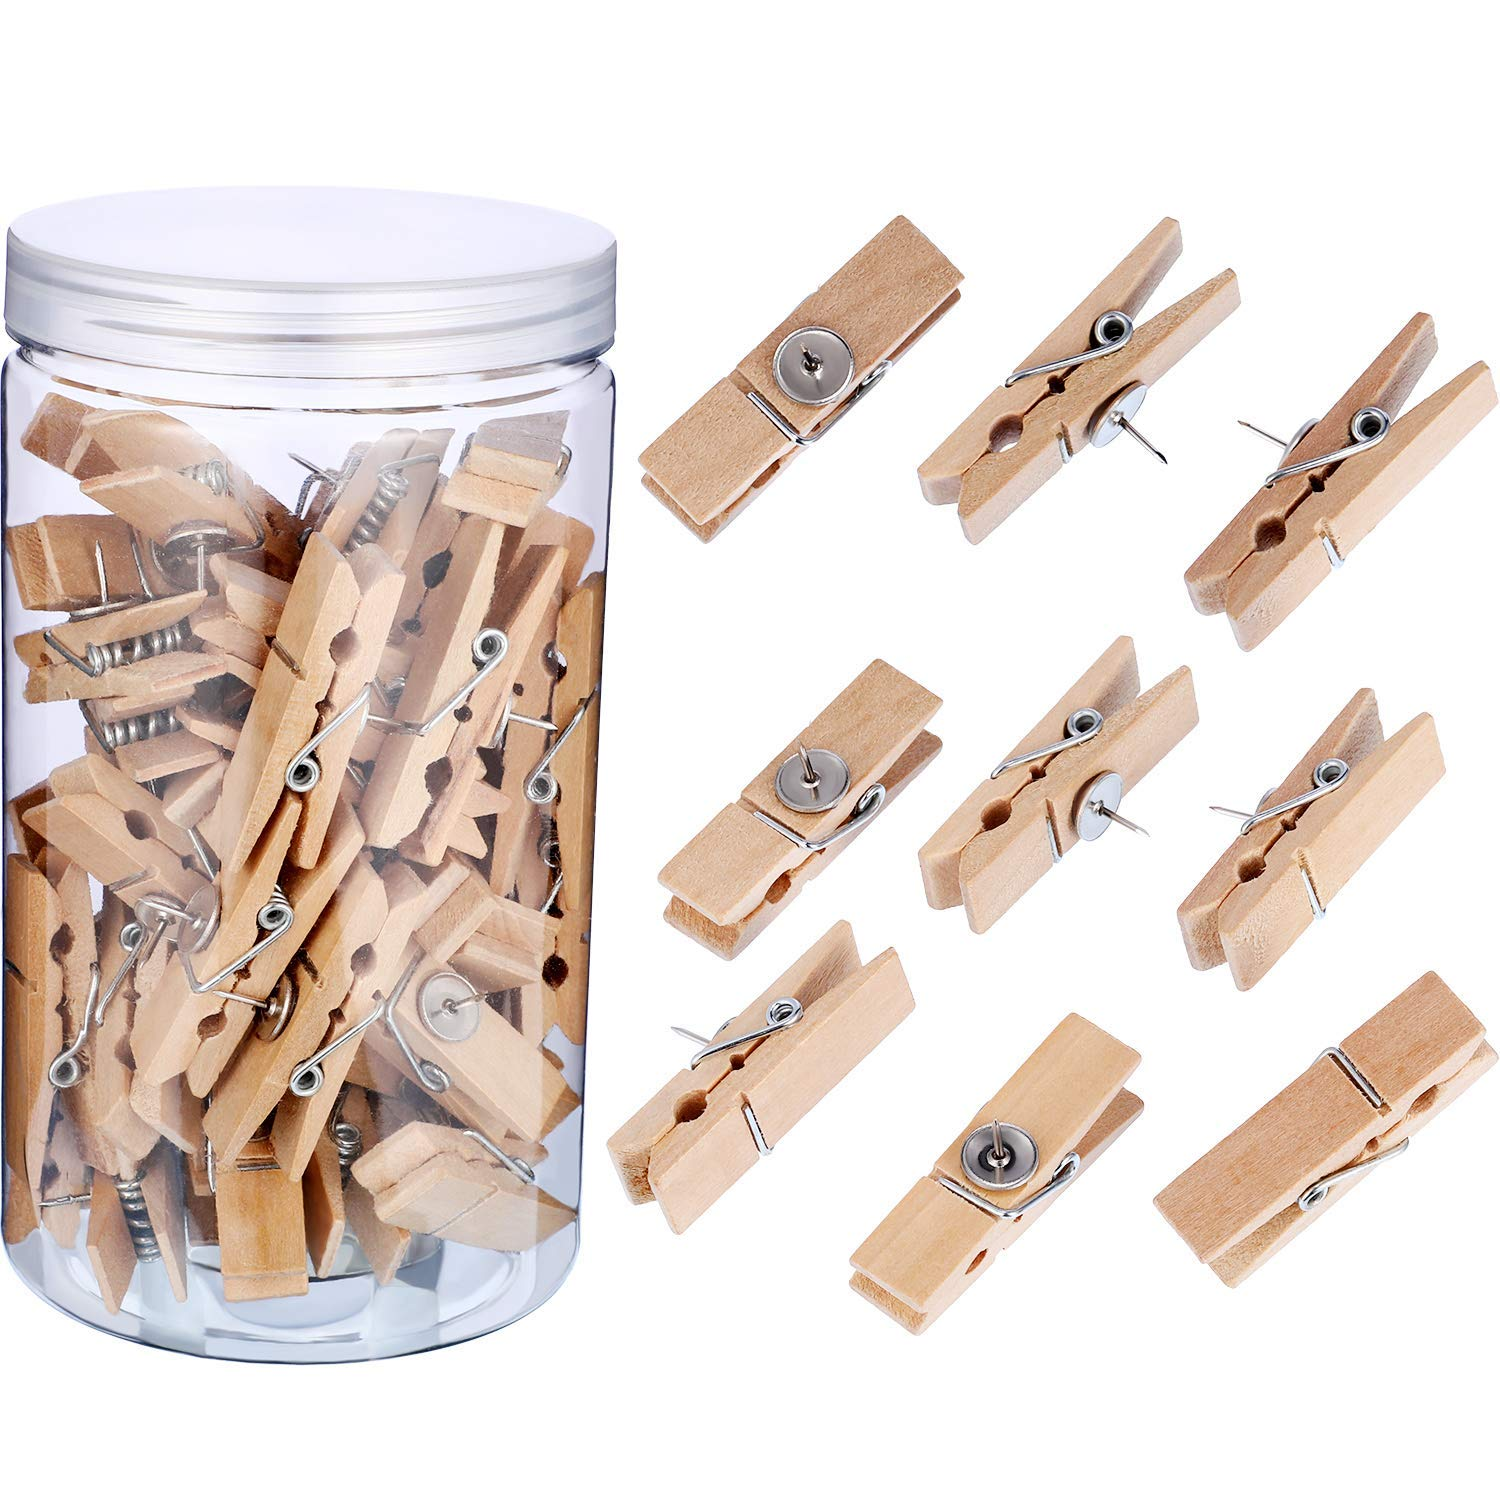 Tatuo 50 Pieces Wooden Clips with Push Pins Multi-Purpose Thumbtacks Pushpins with Clips for Photos Cork Boards Artwork Bulletin Board Supplies